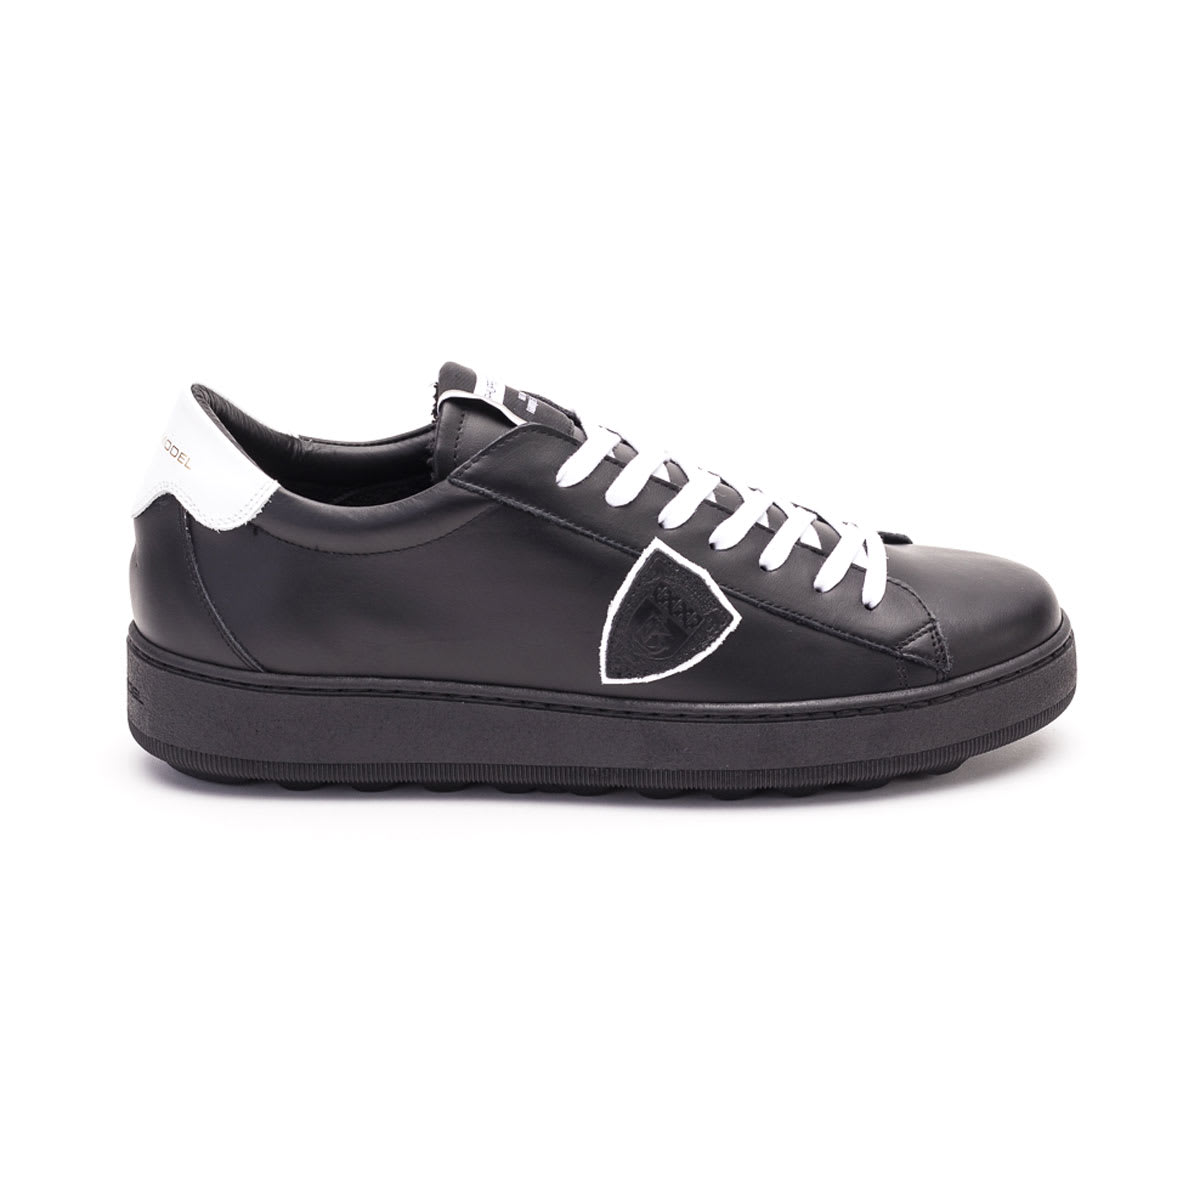 Philippe Model Madeleine Veau Noir Lether Sneakers